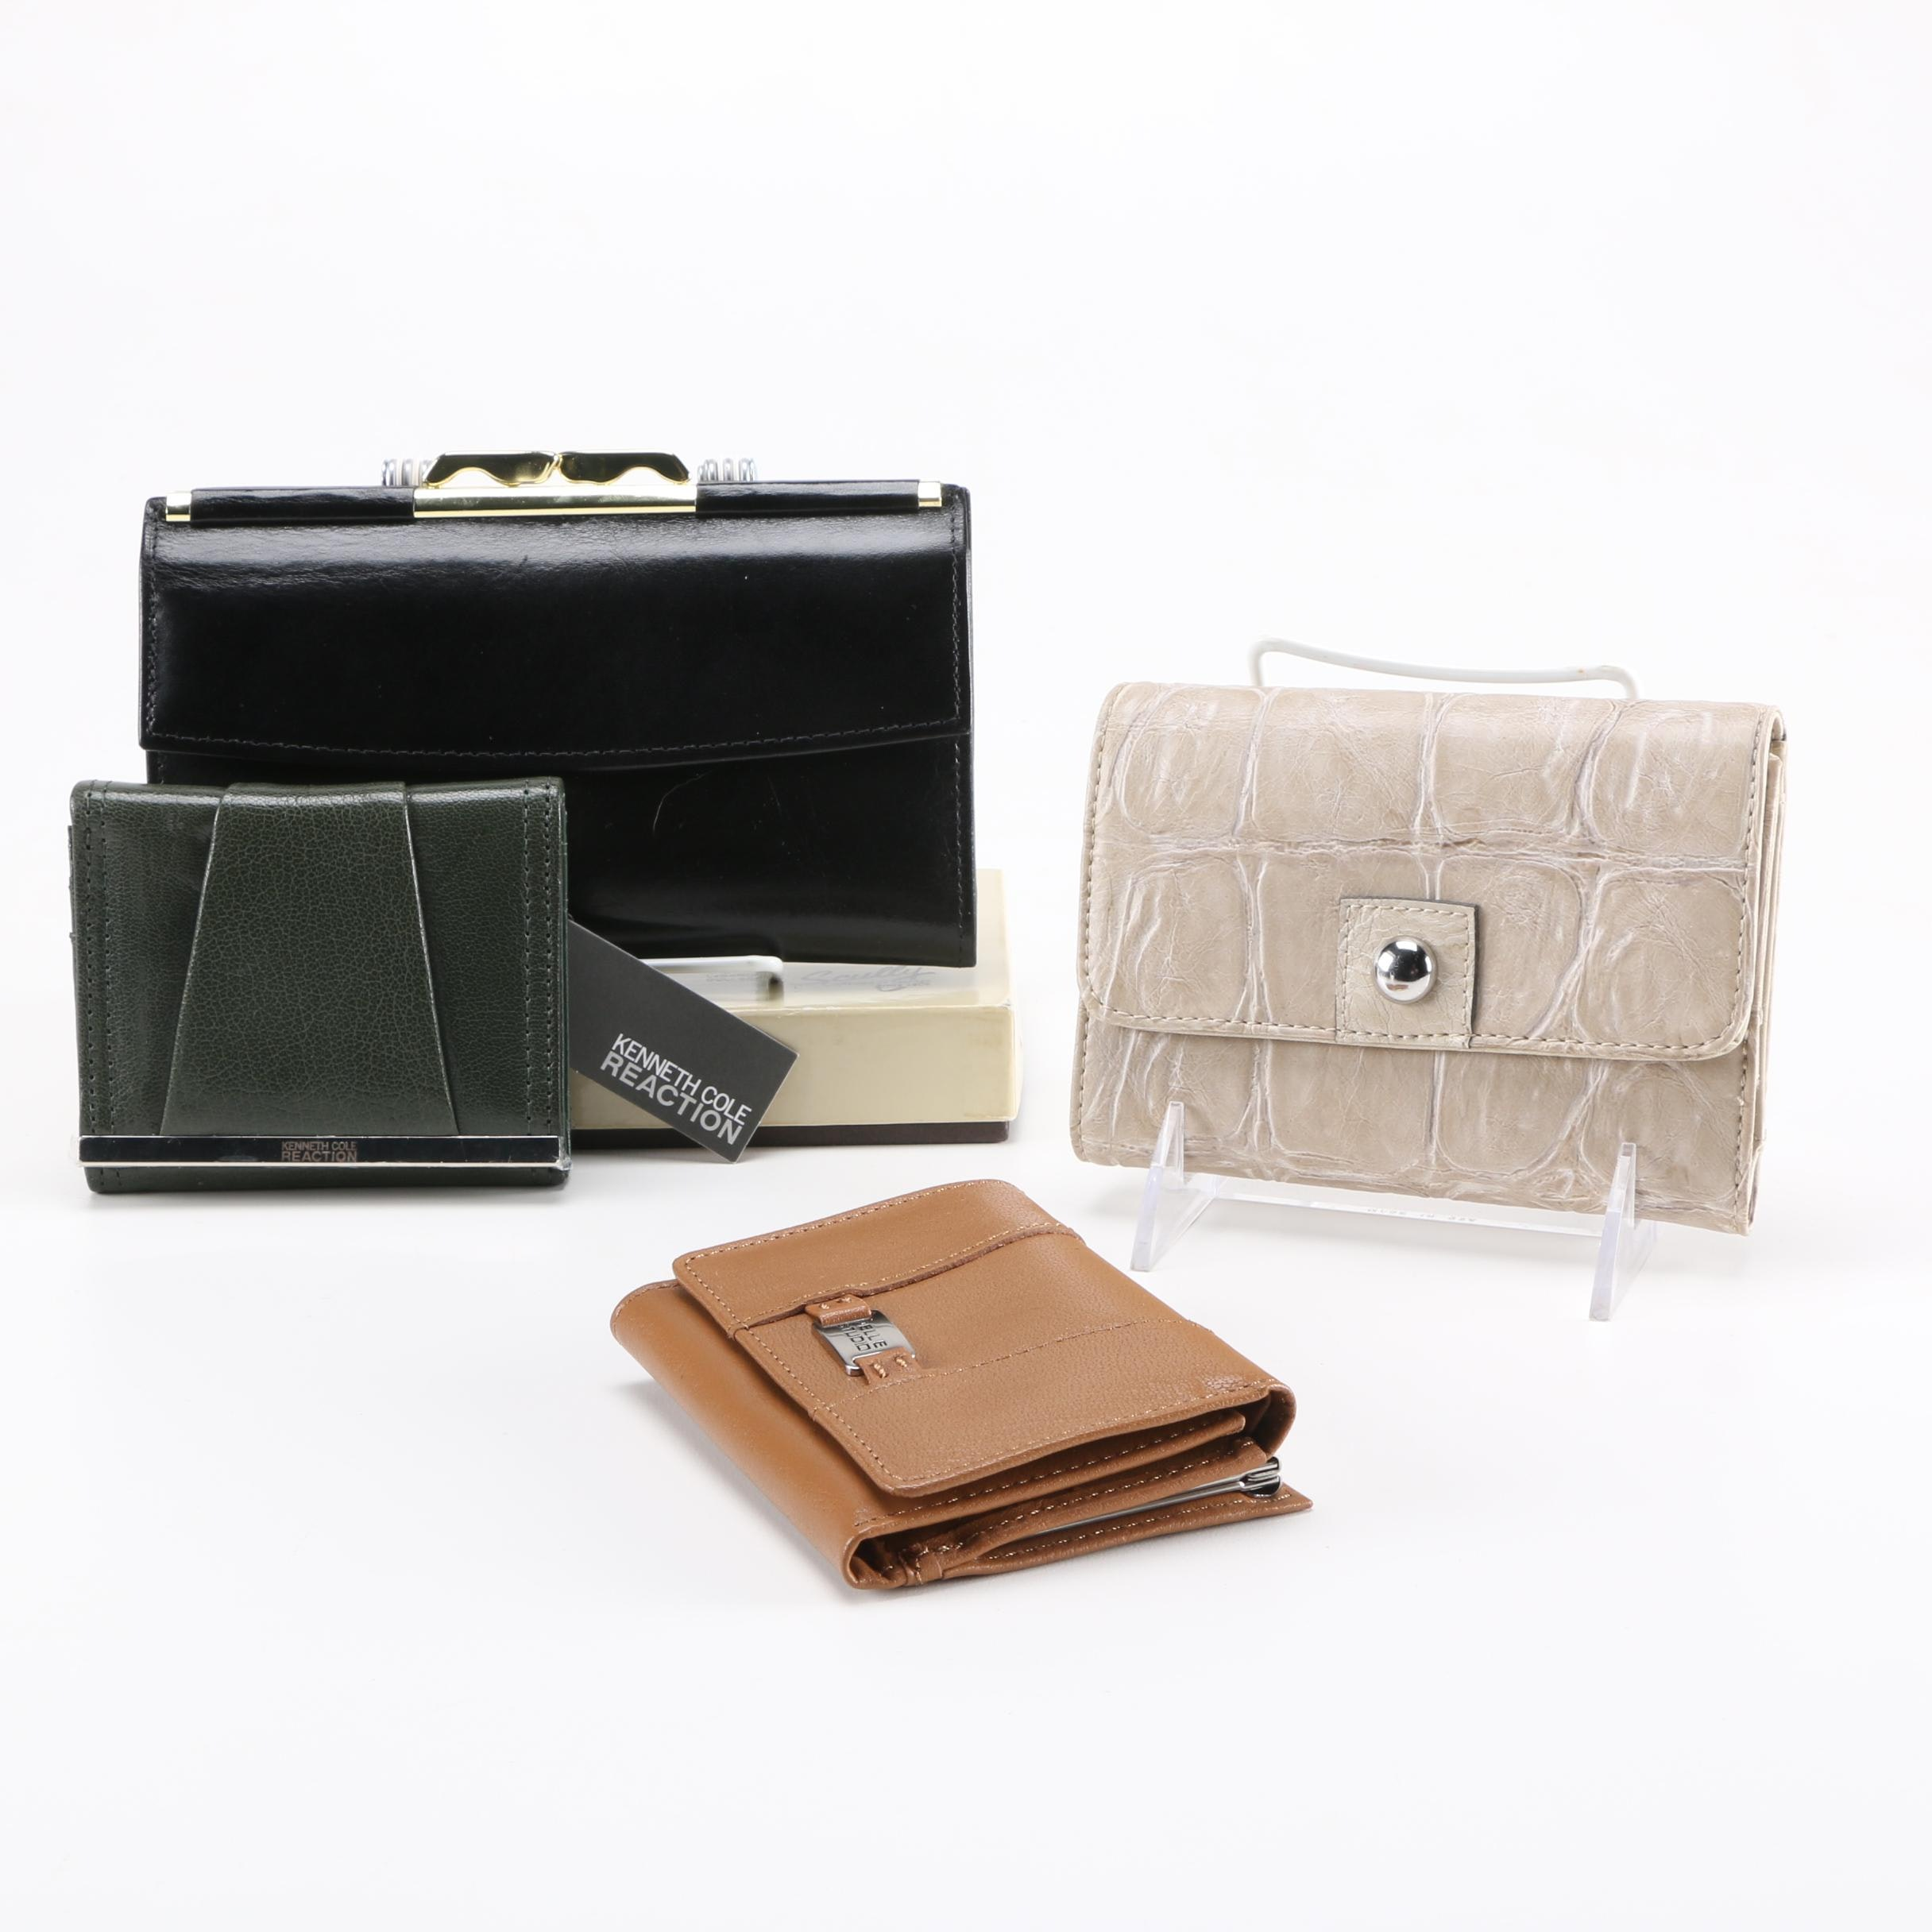 Women's Wallets Including Kenneth Cole Reaction